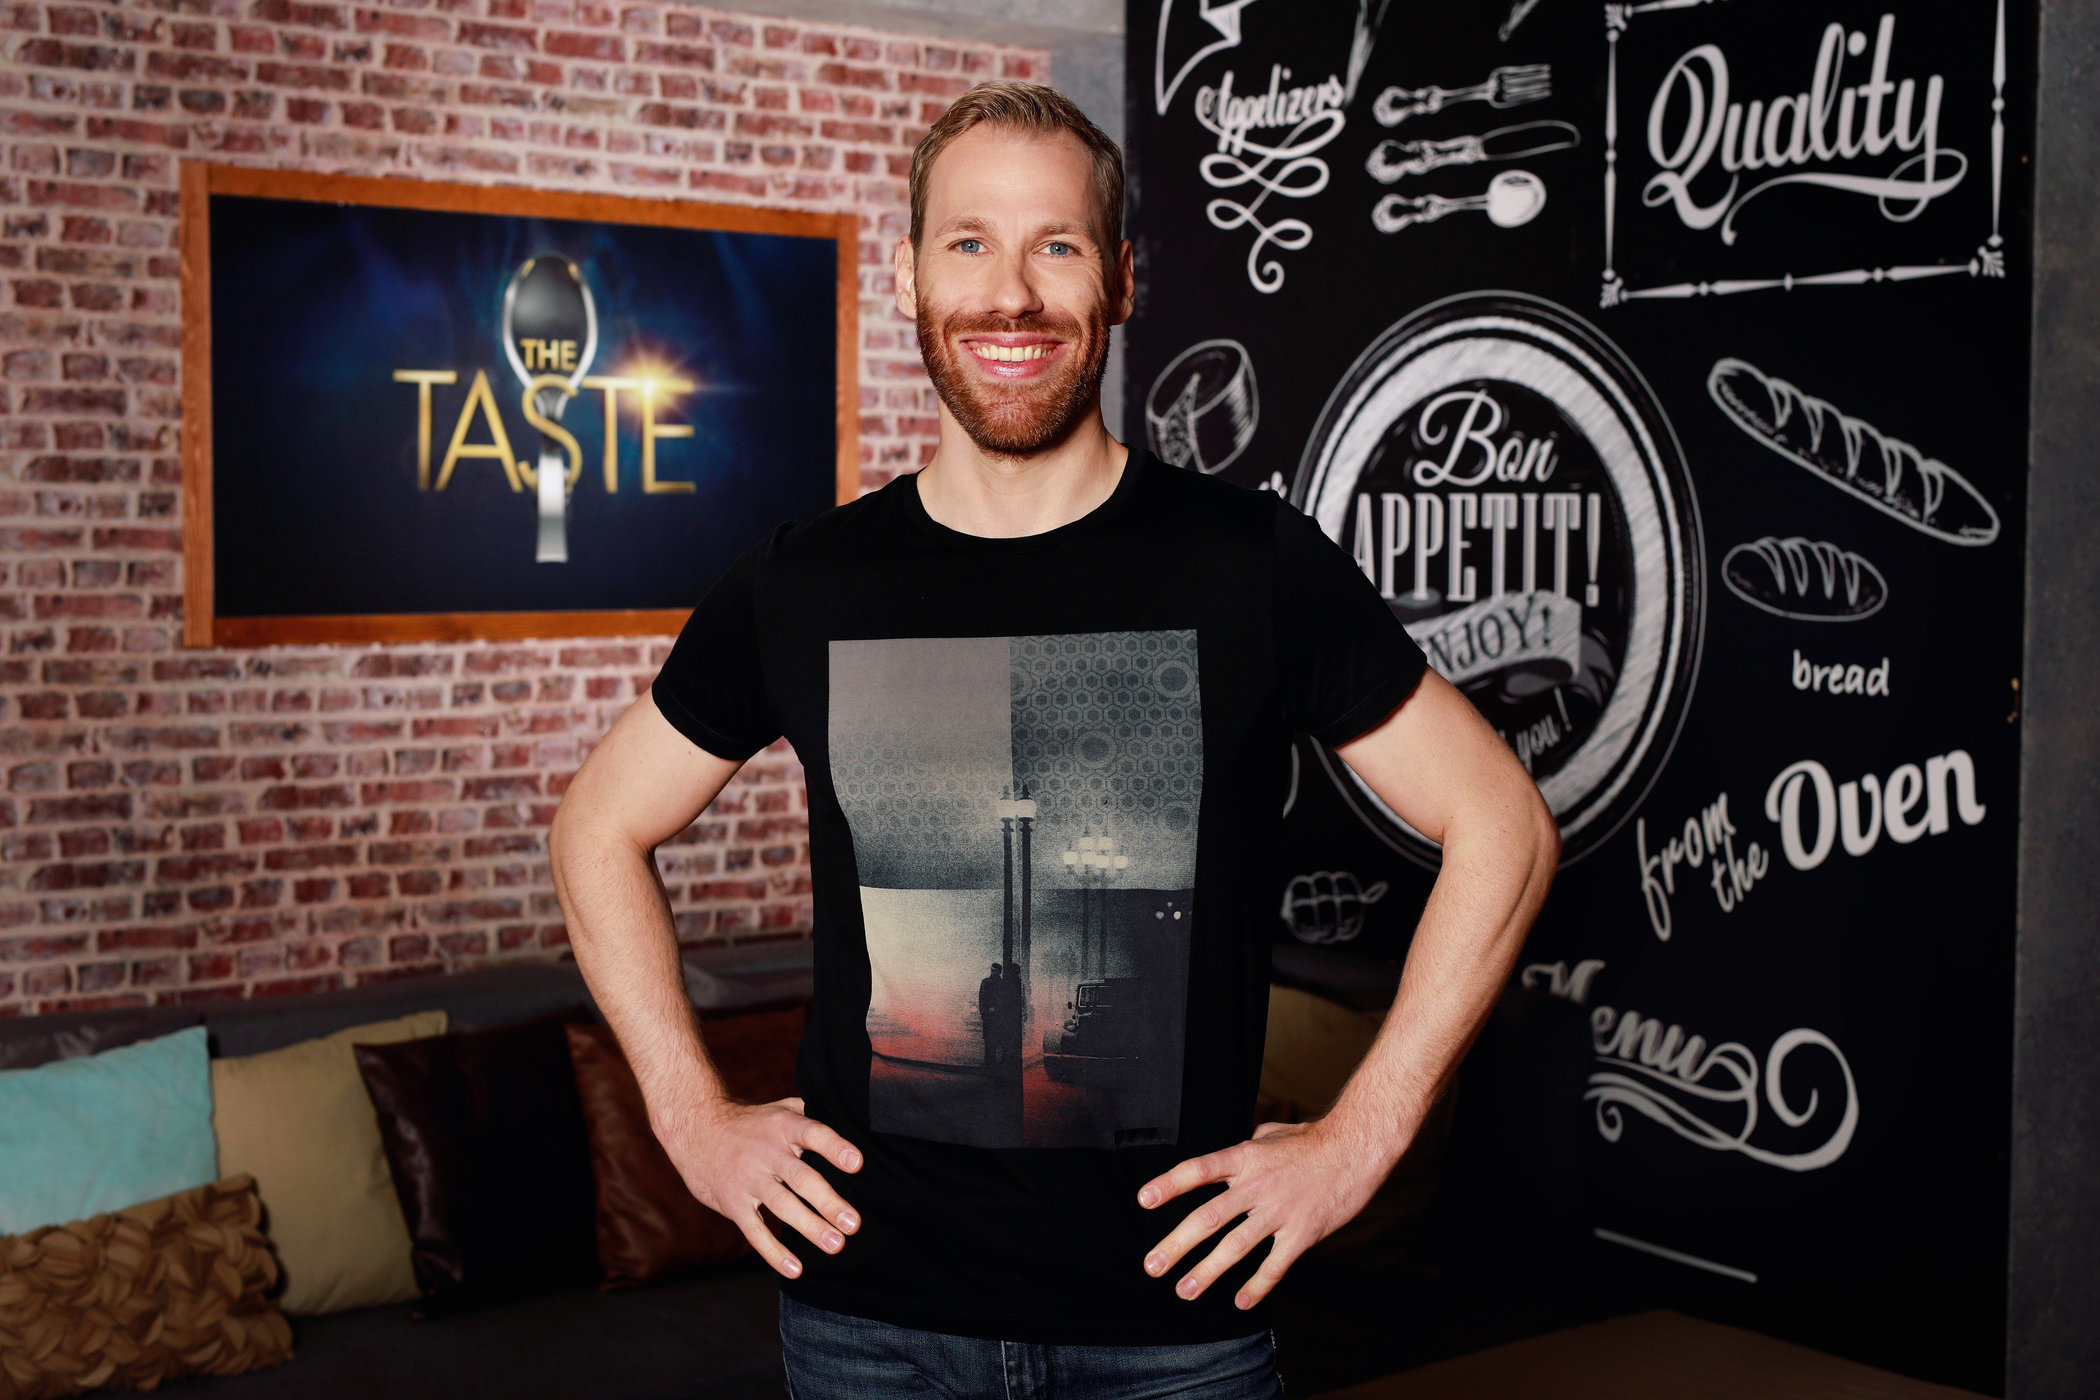 Lutz bei The Taste 2019